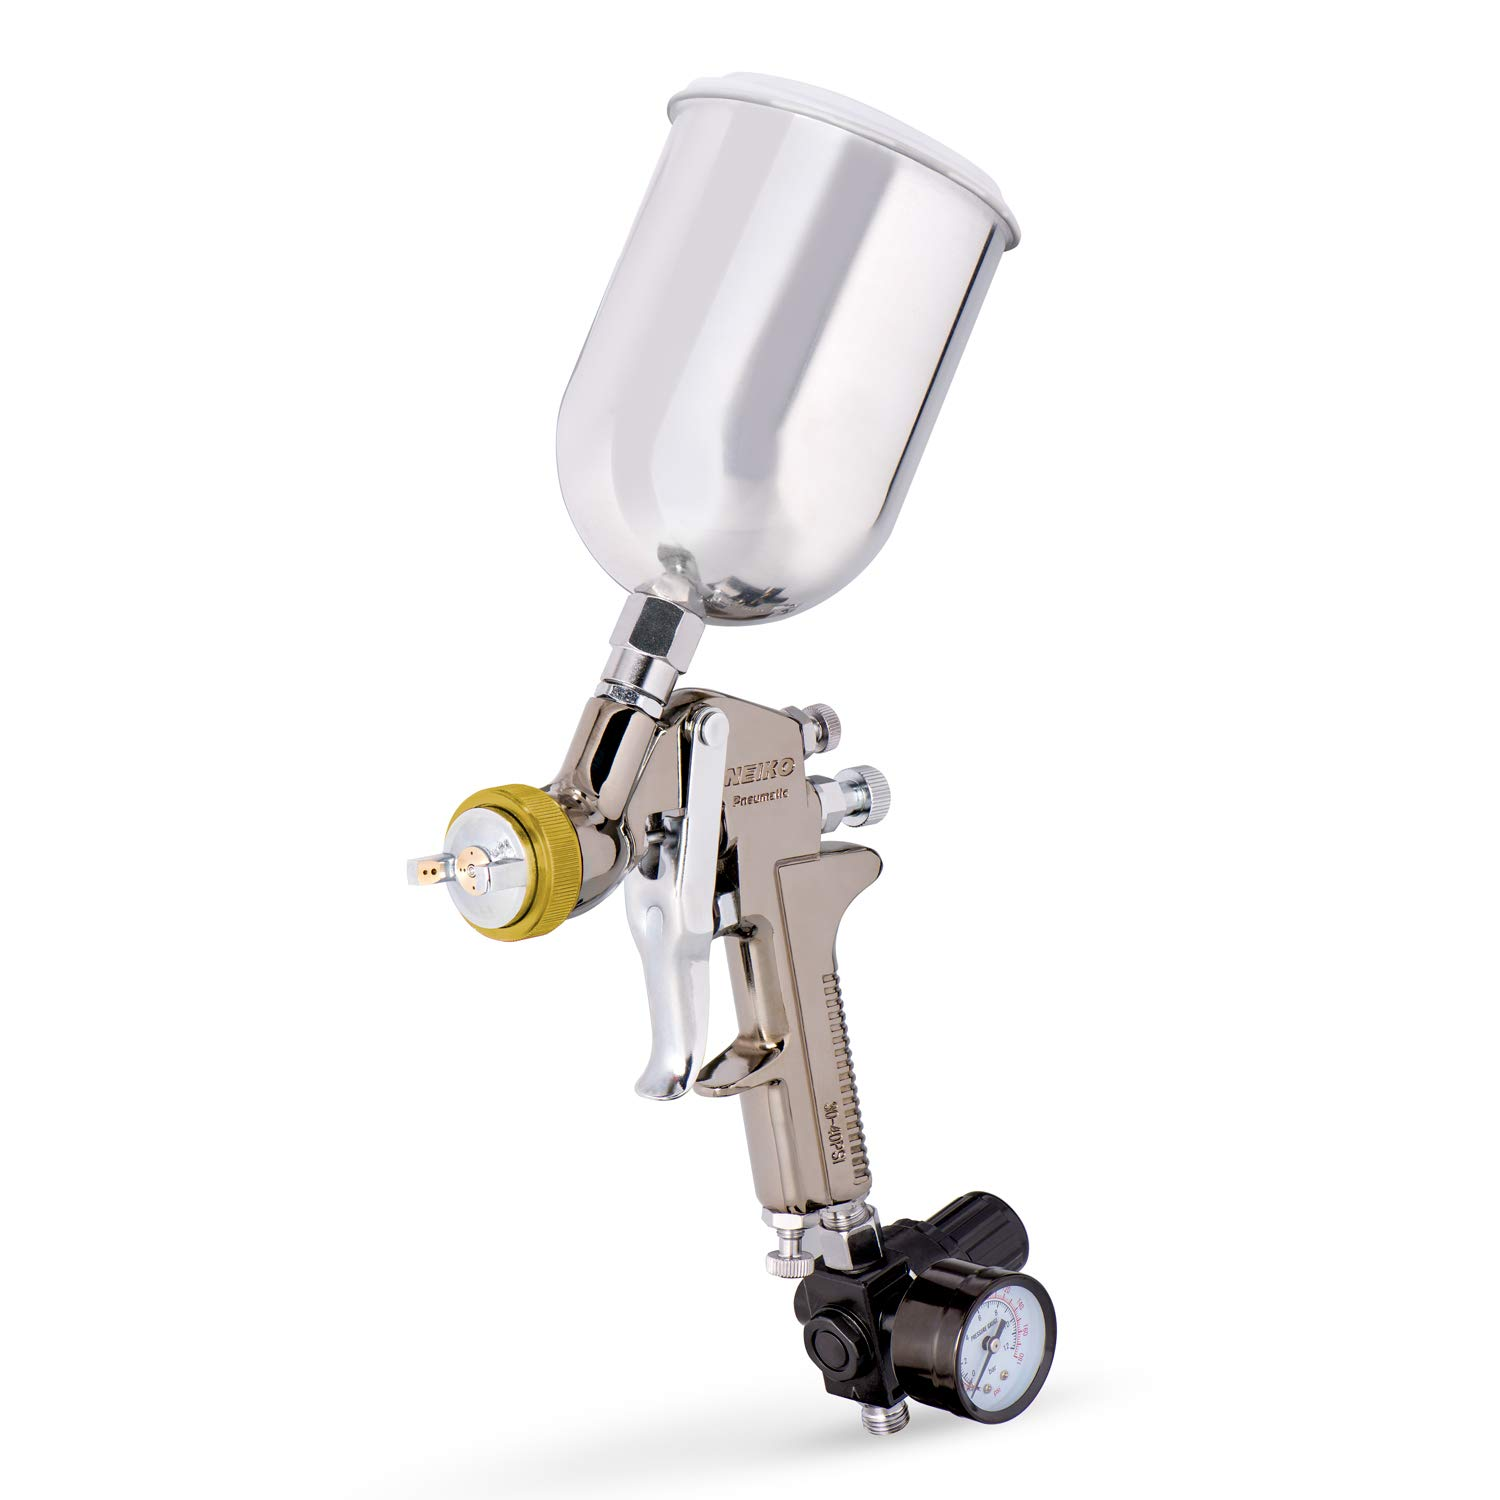 Neiko 31215A HVLP Gravity Feed Air Spray Gun, 1.7 mm Nozzle Size, 600 cc Aluminum Cup, 1.7 mm nozzle by Neiko